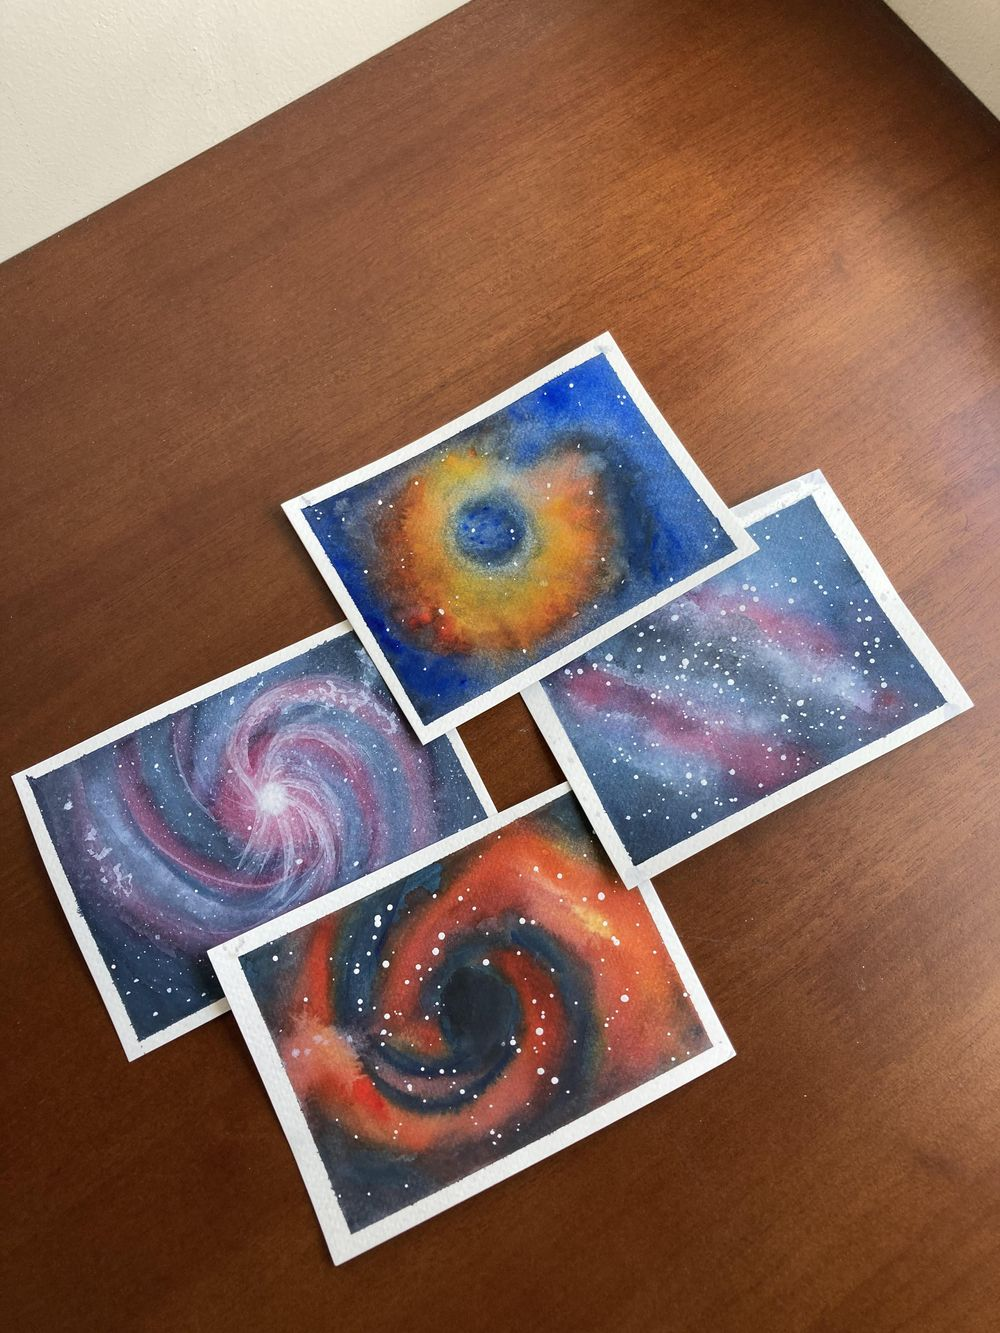 Galaxy Shapes - Vortex, Nebula, Spiral and Milky Way - image 5 - student project